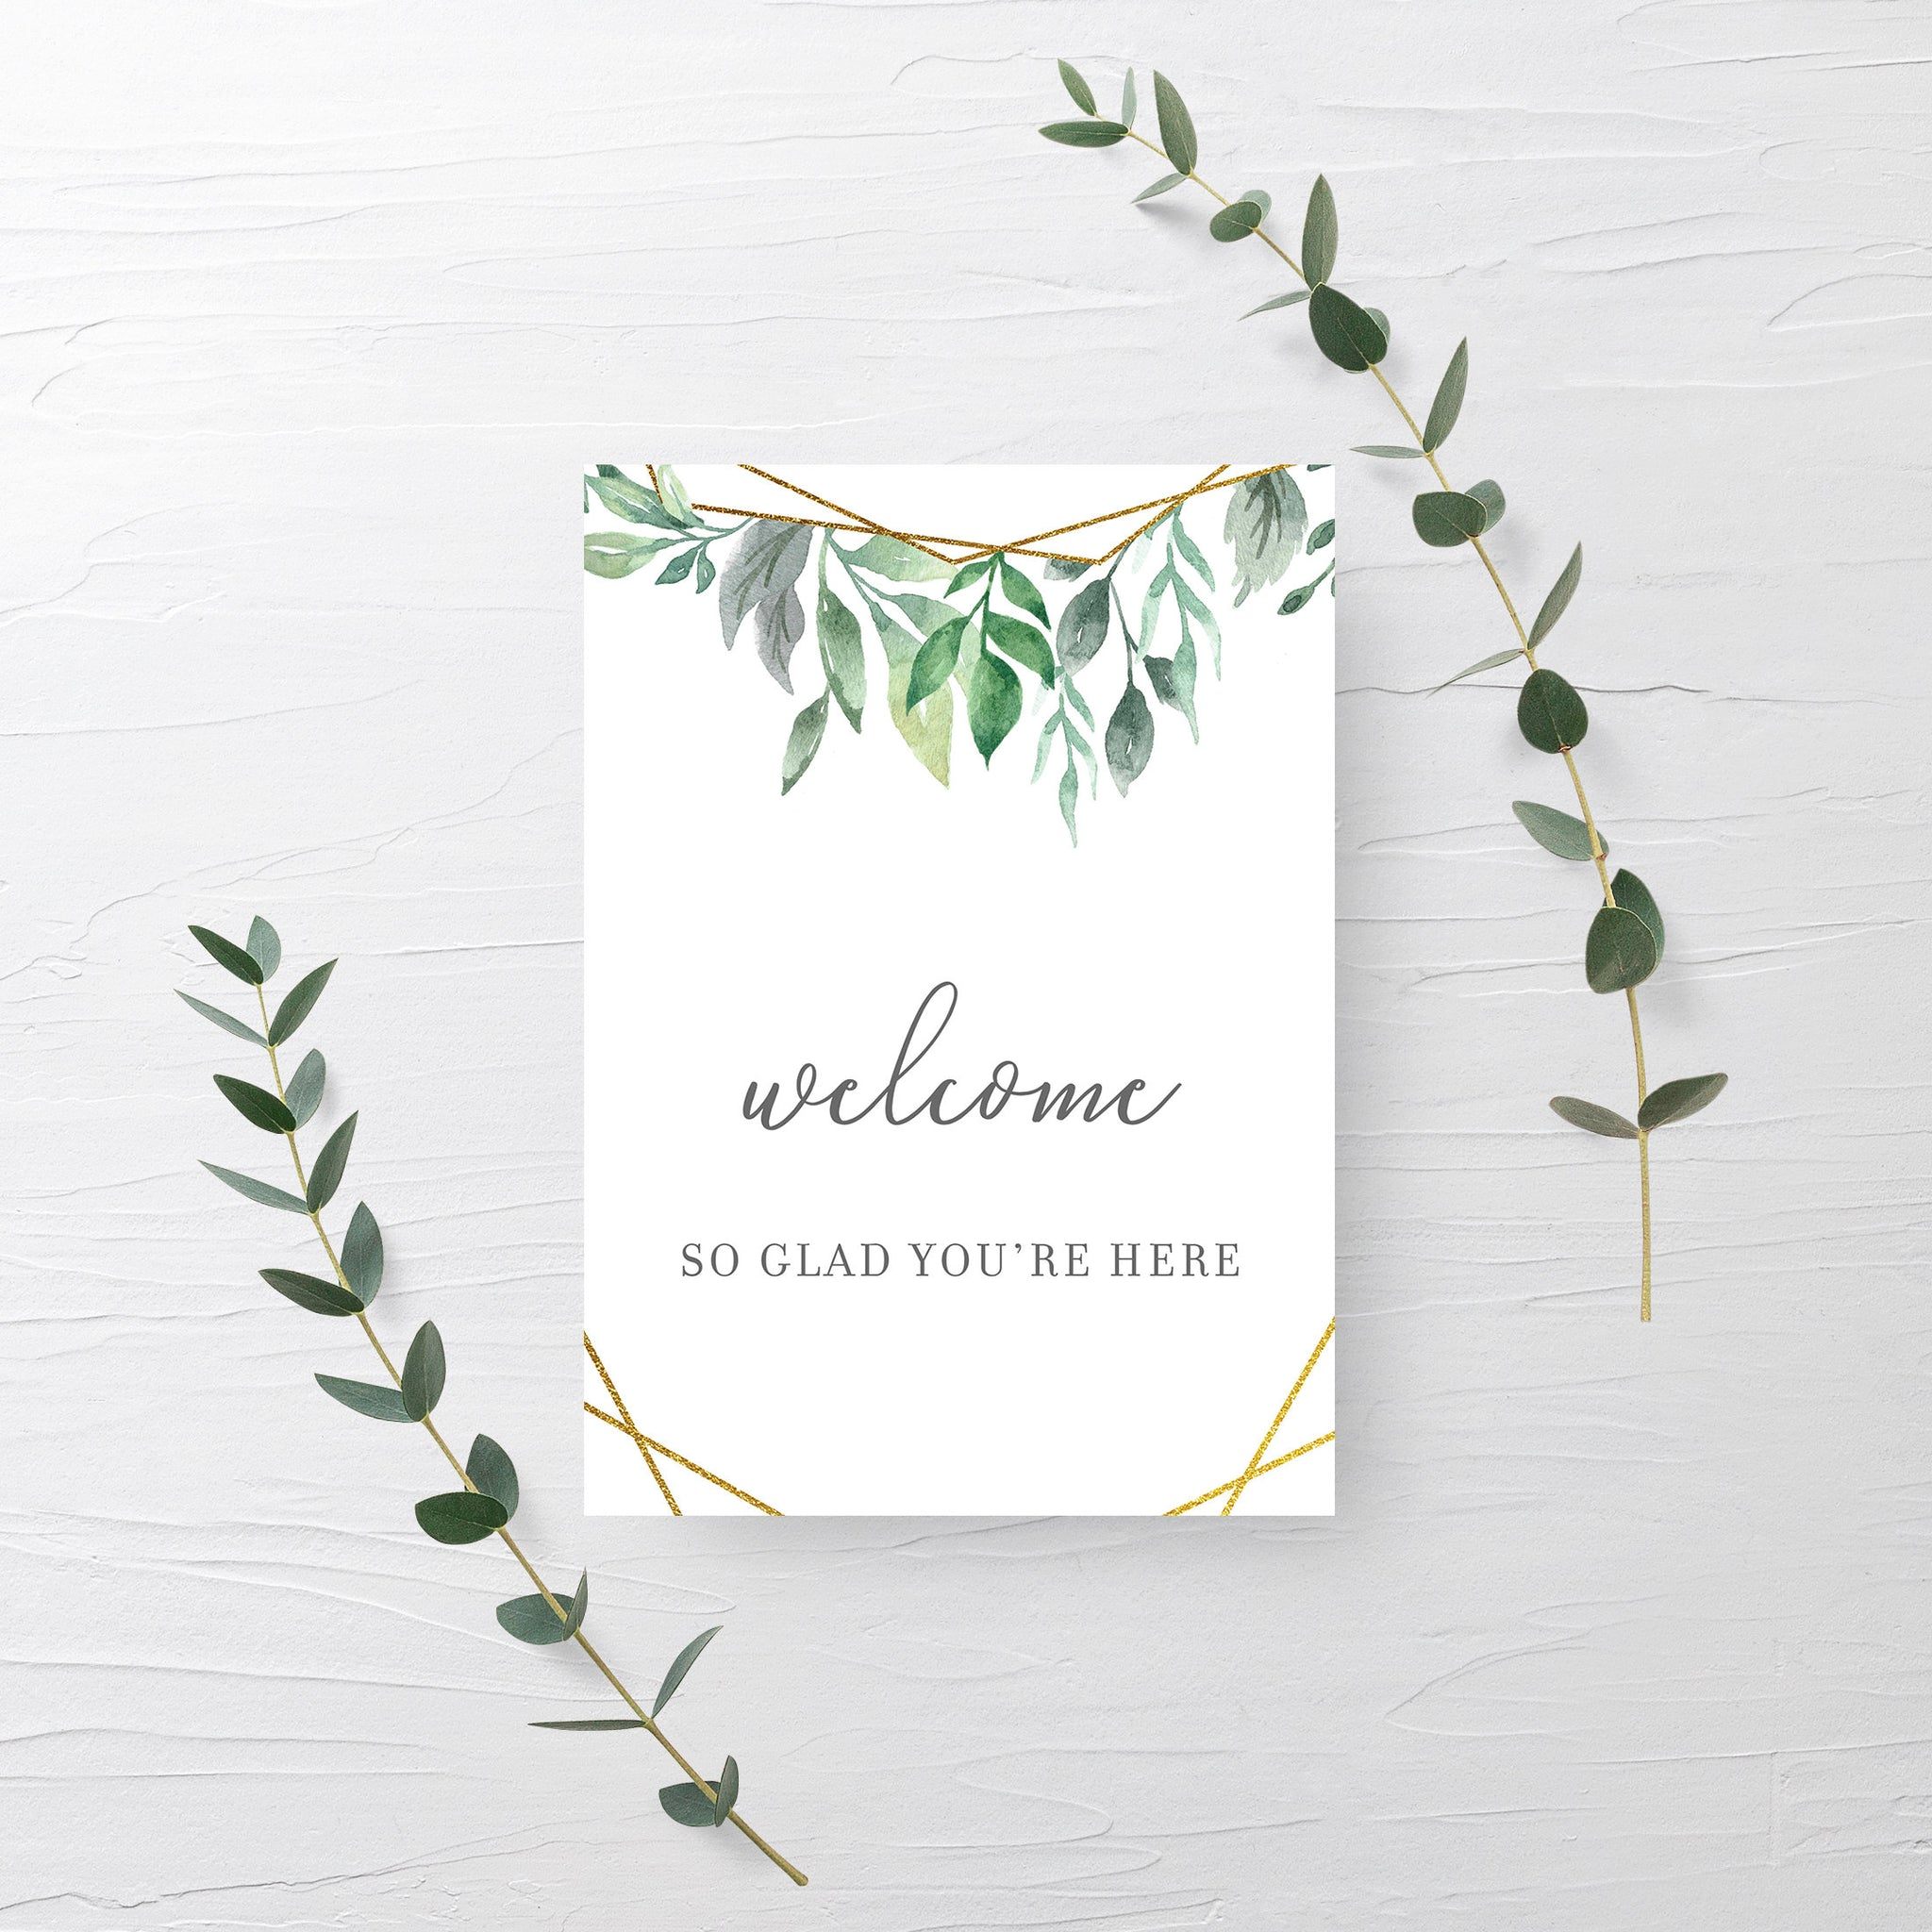 Geometric Gold Greenery Printable Welcome Sign INSTANT DOWNLOAD, Bridal Shower, Baby Shower, Wedding Decorations and Supplies - GFG100 - @PlumPolkaDot